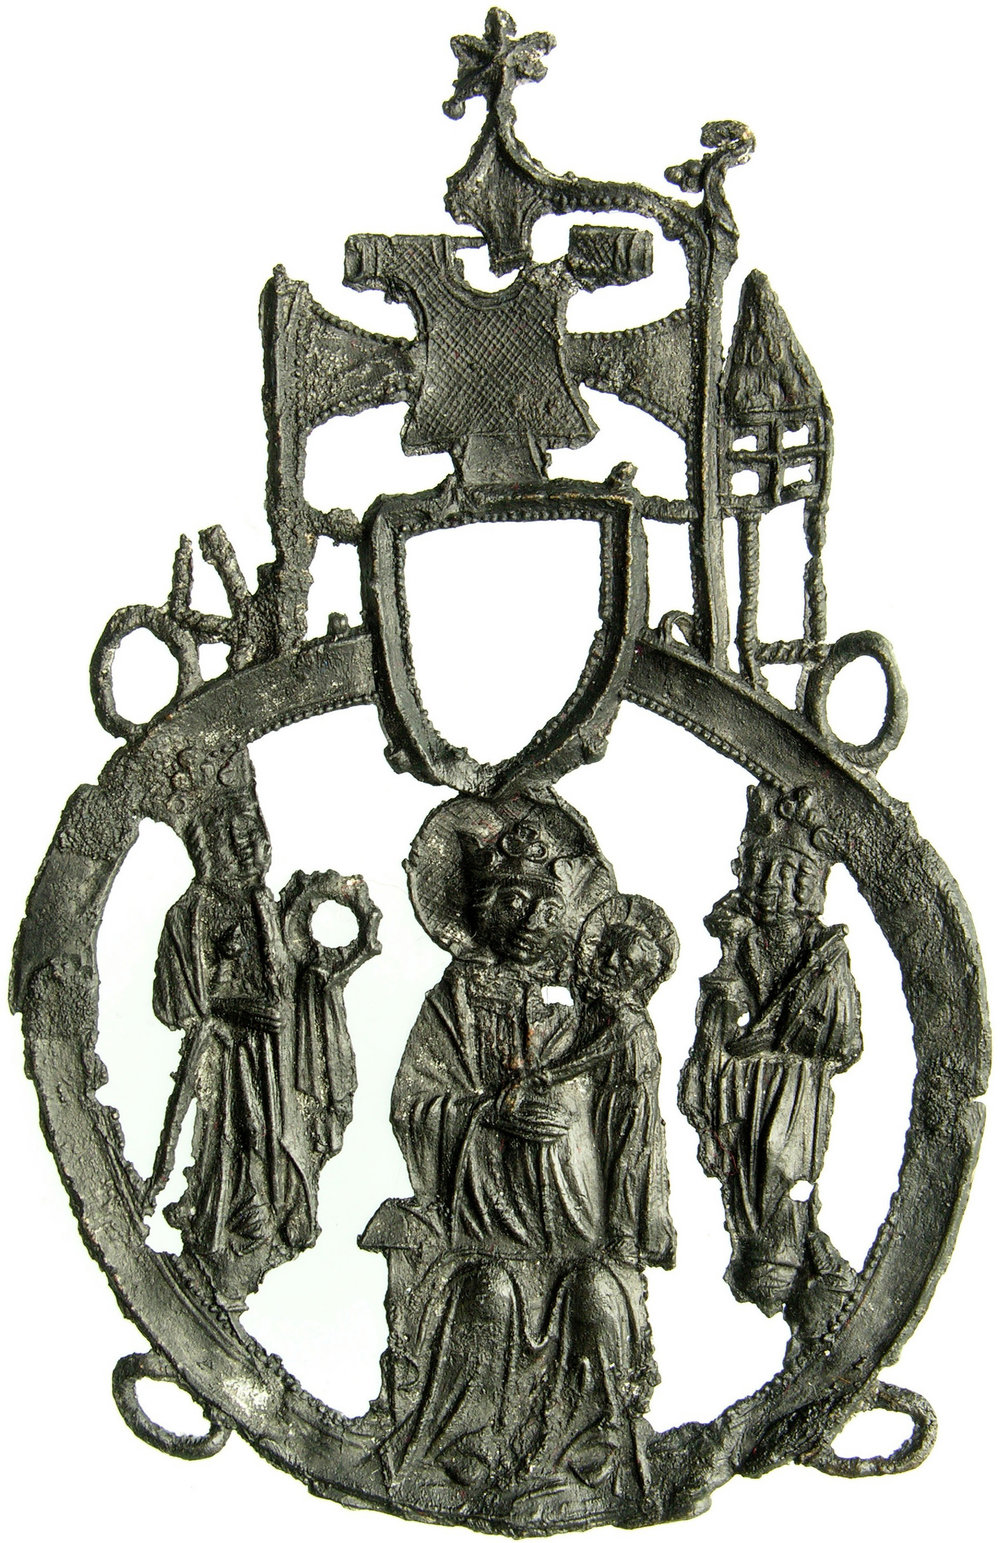 Fig. 6: Badge with the Virgin flanked by Saint Catharine and Charlemagne, above: the relic of the tunic between two towers, Aachen, found in Dordrecht, lead-tin alloy, 120 x 77 mm, Van Beuningen family collection, inv. no. 2323 (HP1 421)